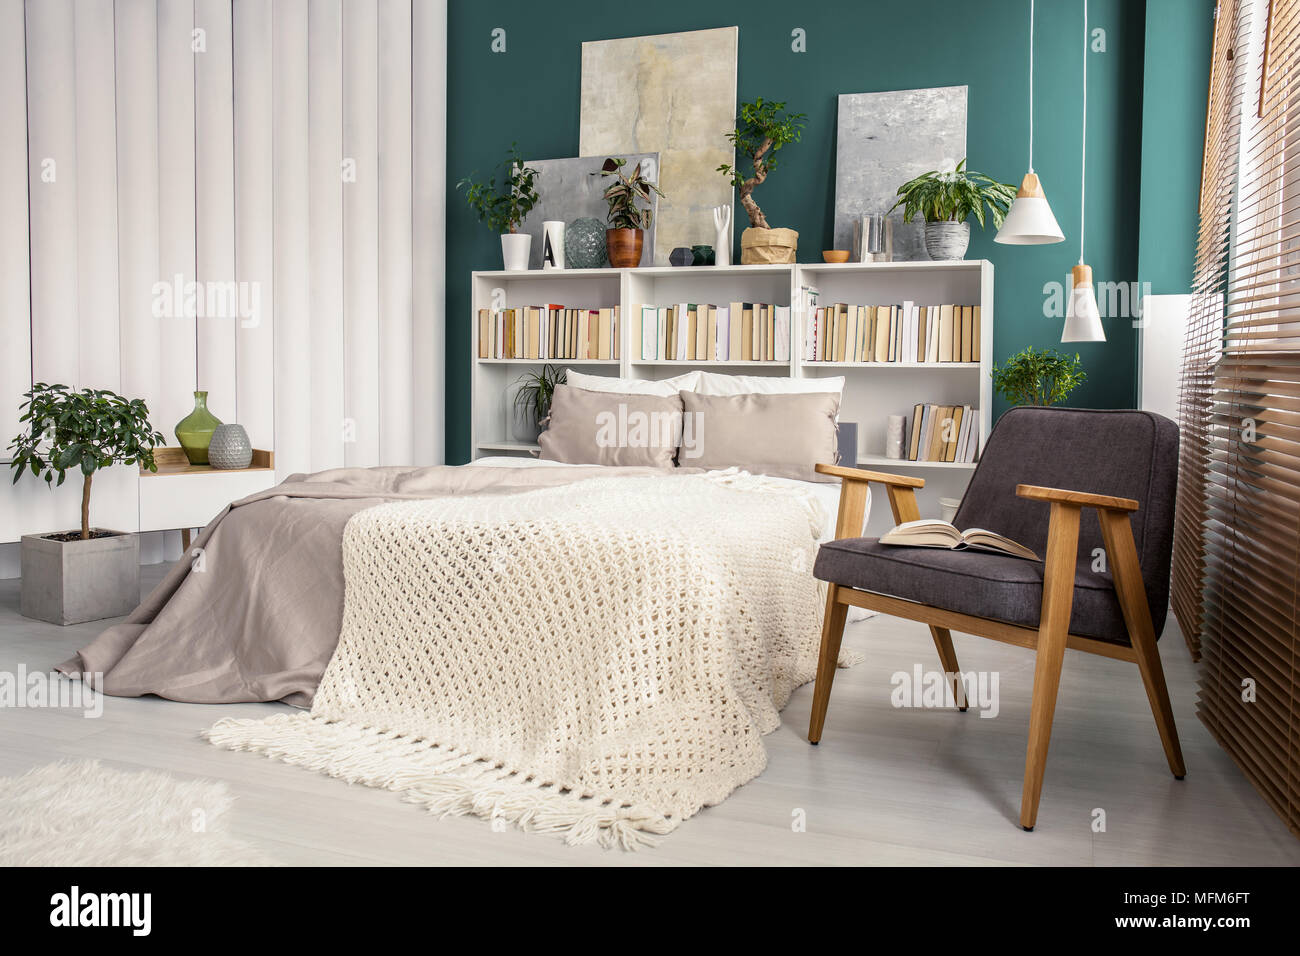 Exceptionnel White And Green Bedroom Interior With A Knit Blanket On Beige Bed Between  Vintage, Gray Armchair And Tubes Wall